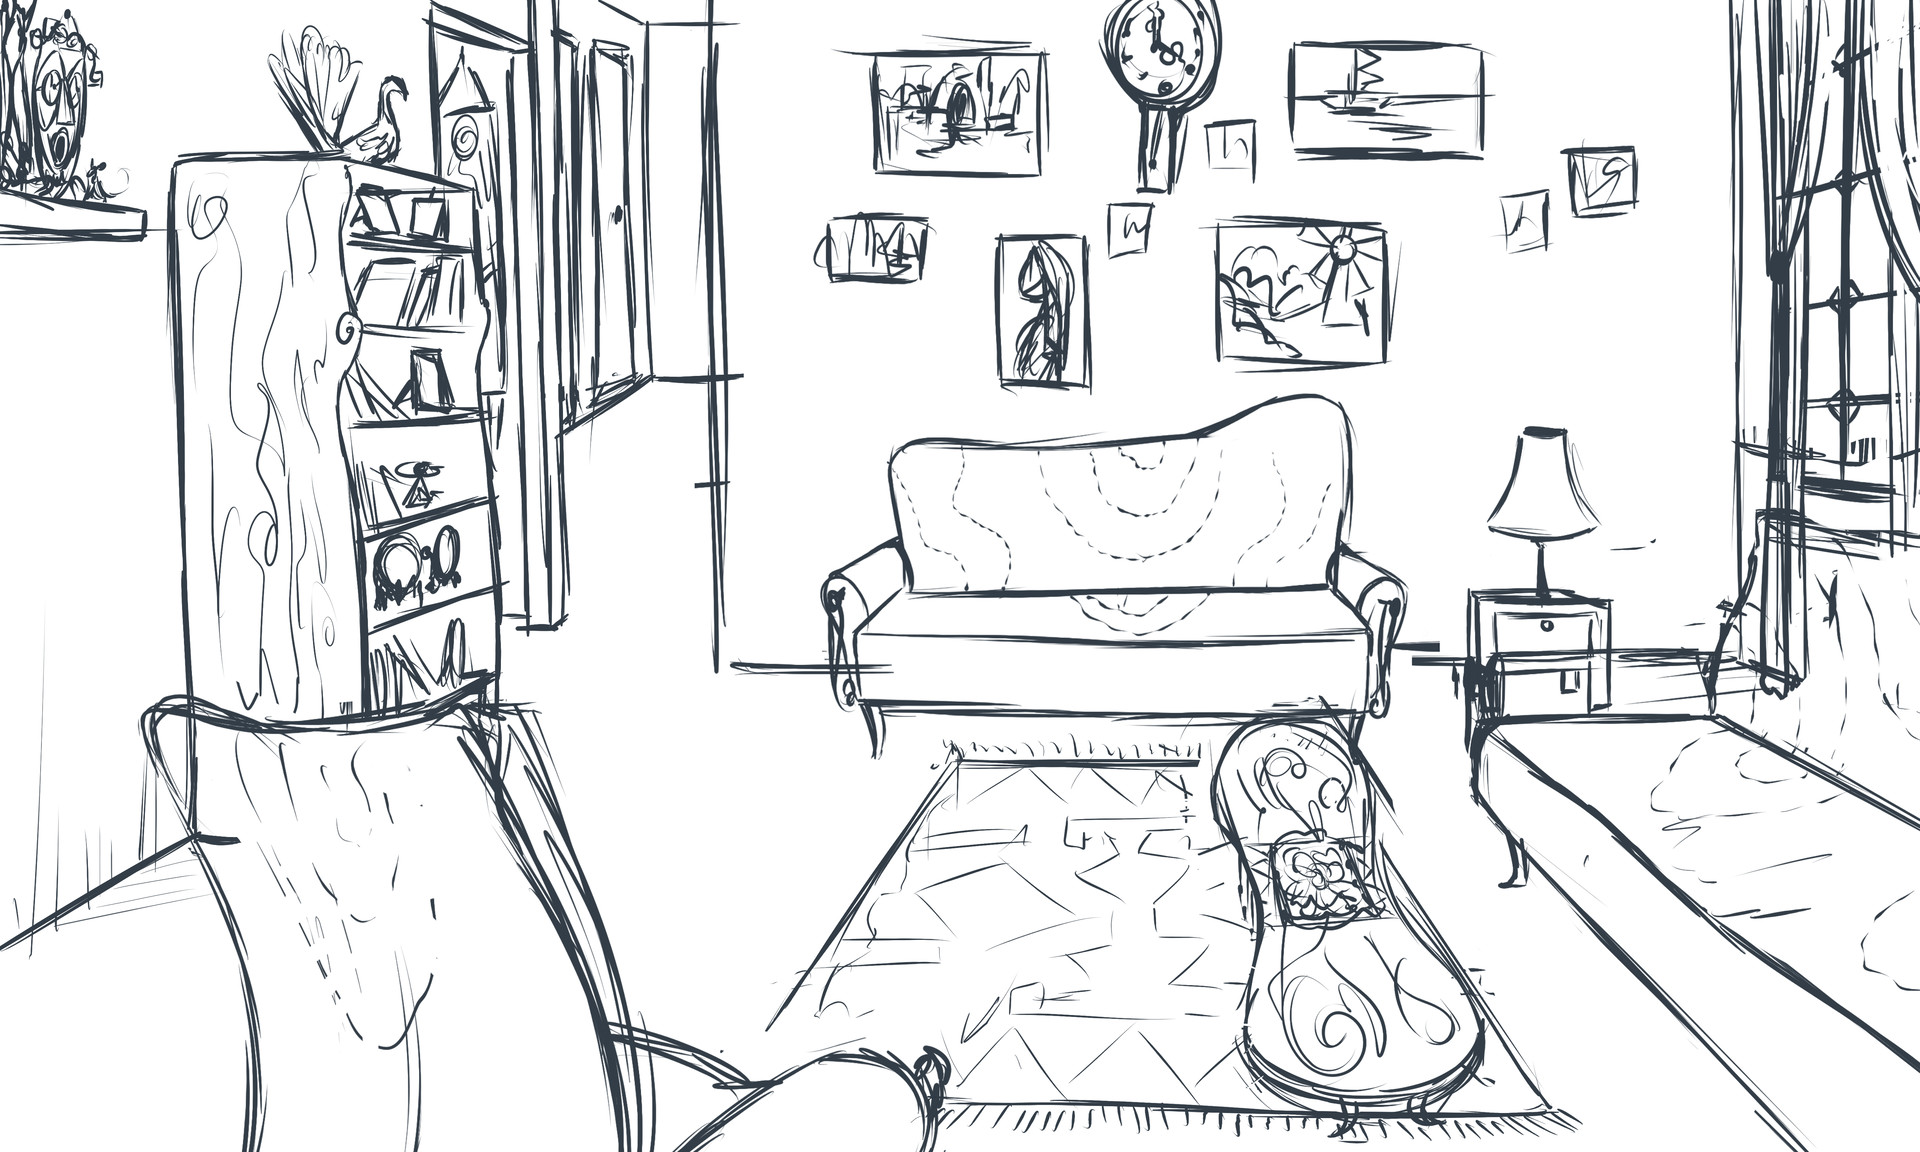 Meitar lavi living room sketch